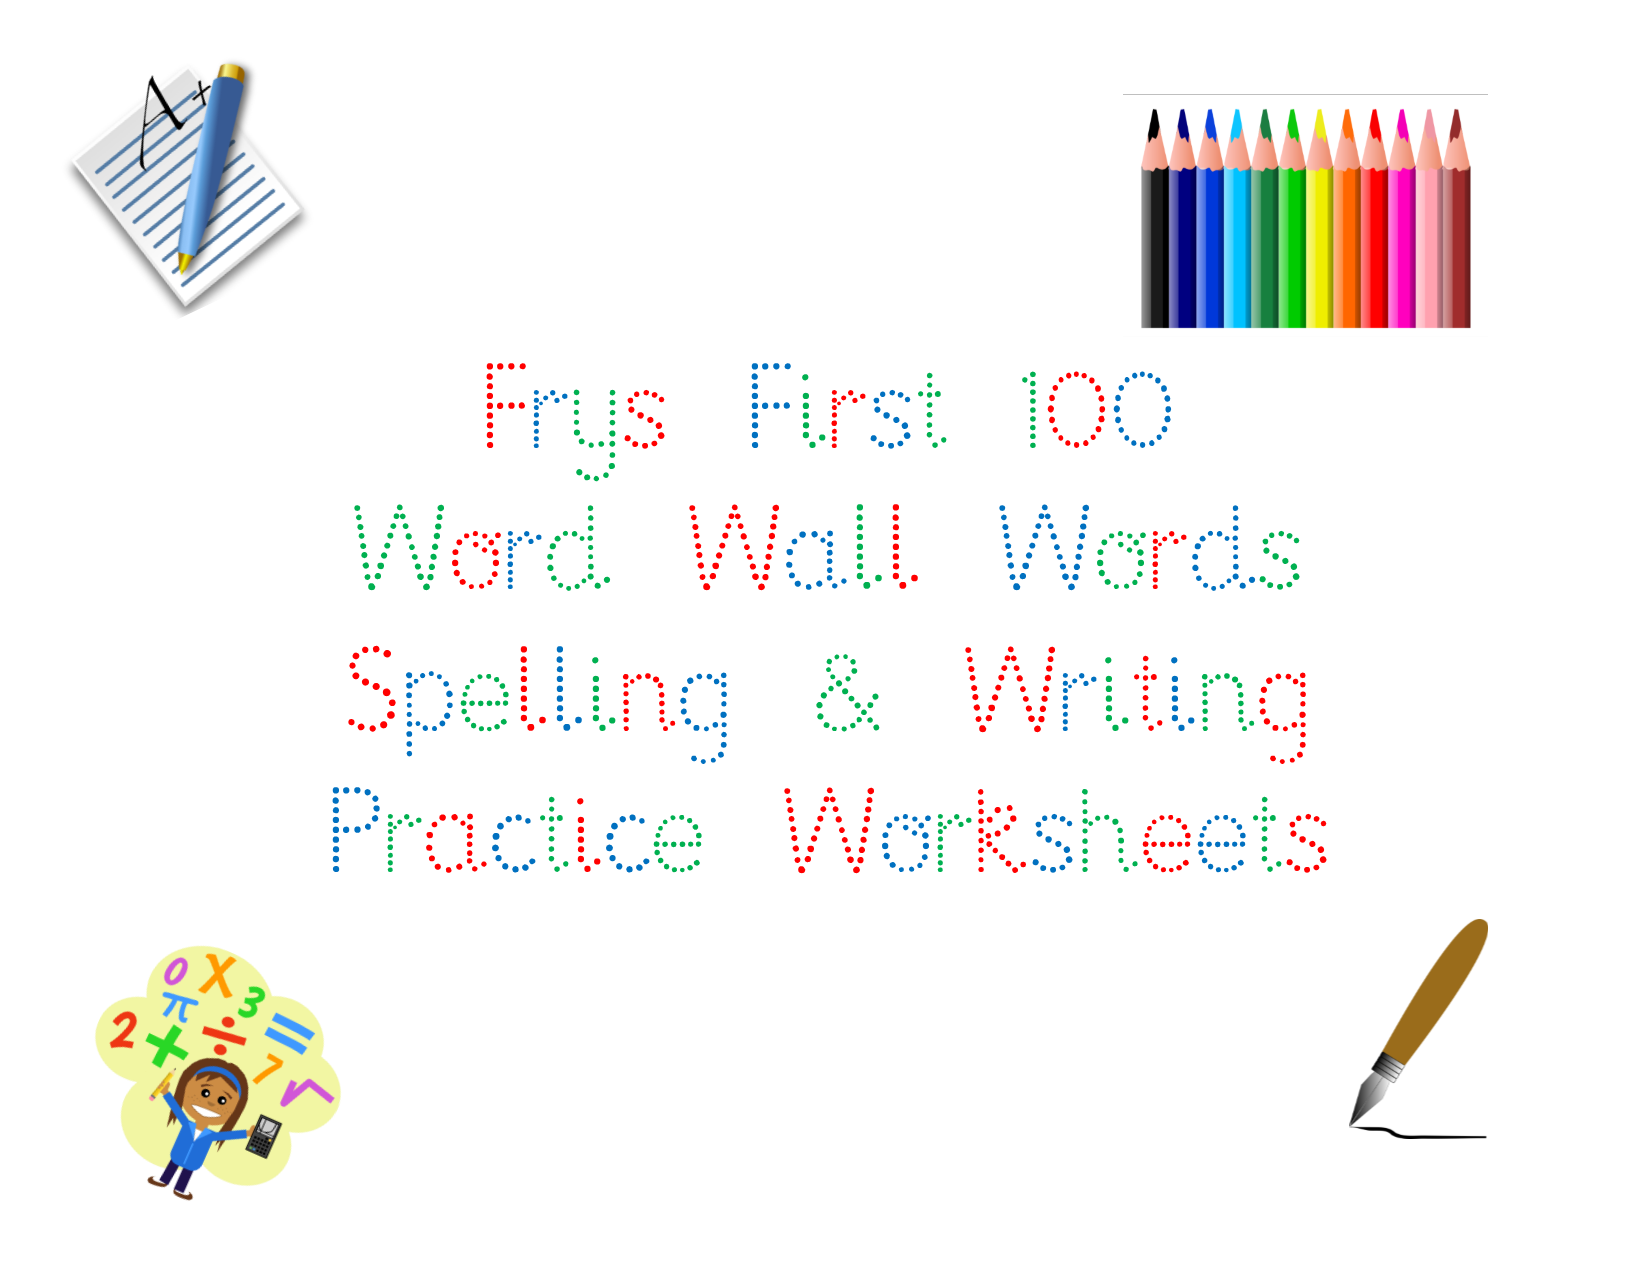 graphic about Free Printable Spelling Practice Worksheets known as Absolutely free Printable! Frys 1st 100 Phrase Wall Words and phrases Crafting and